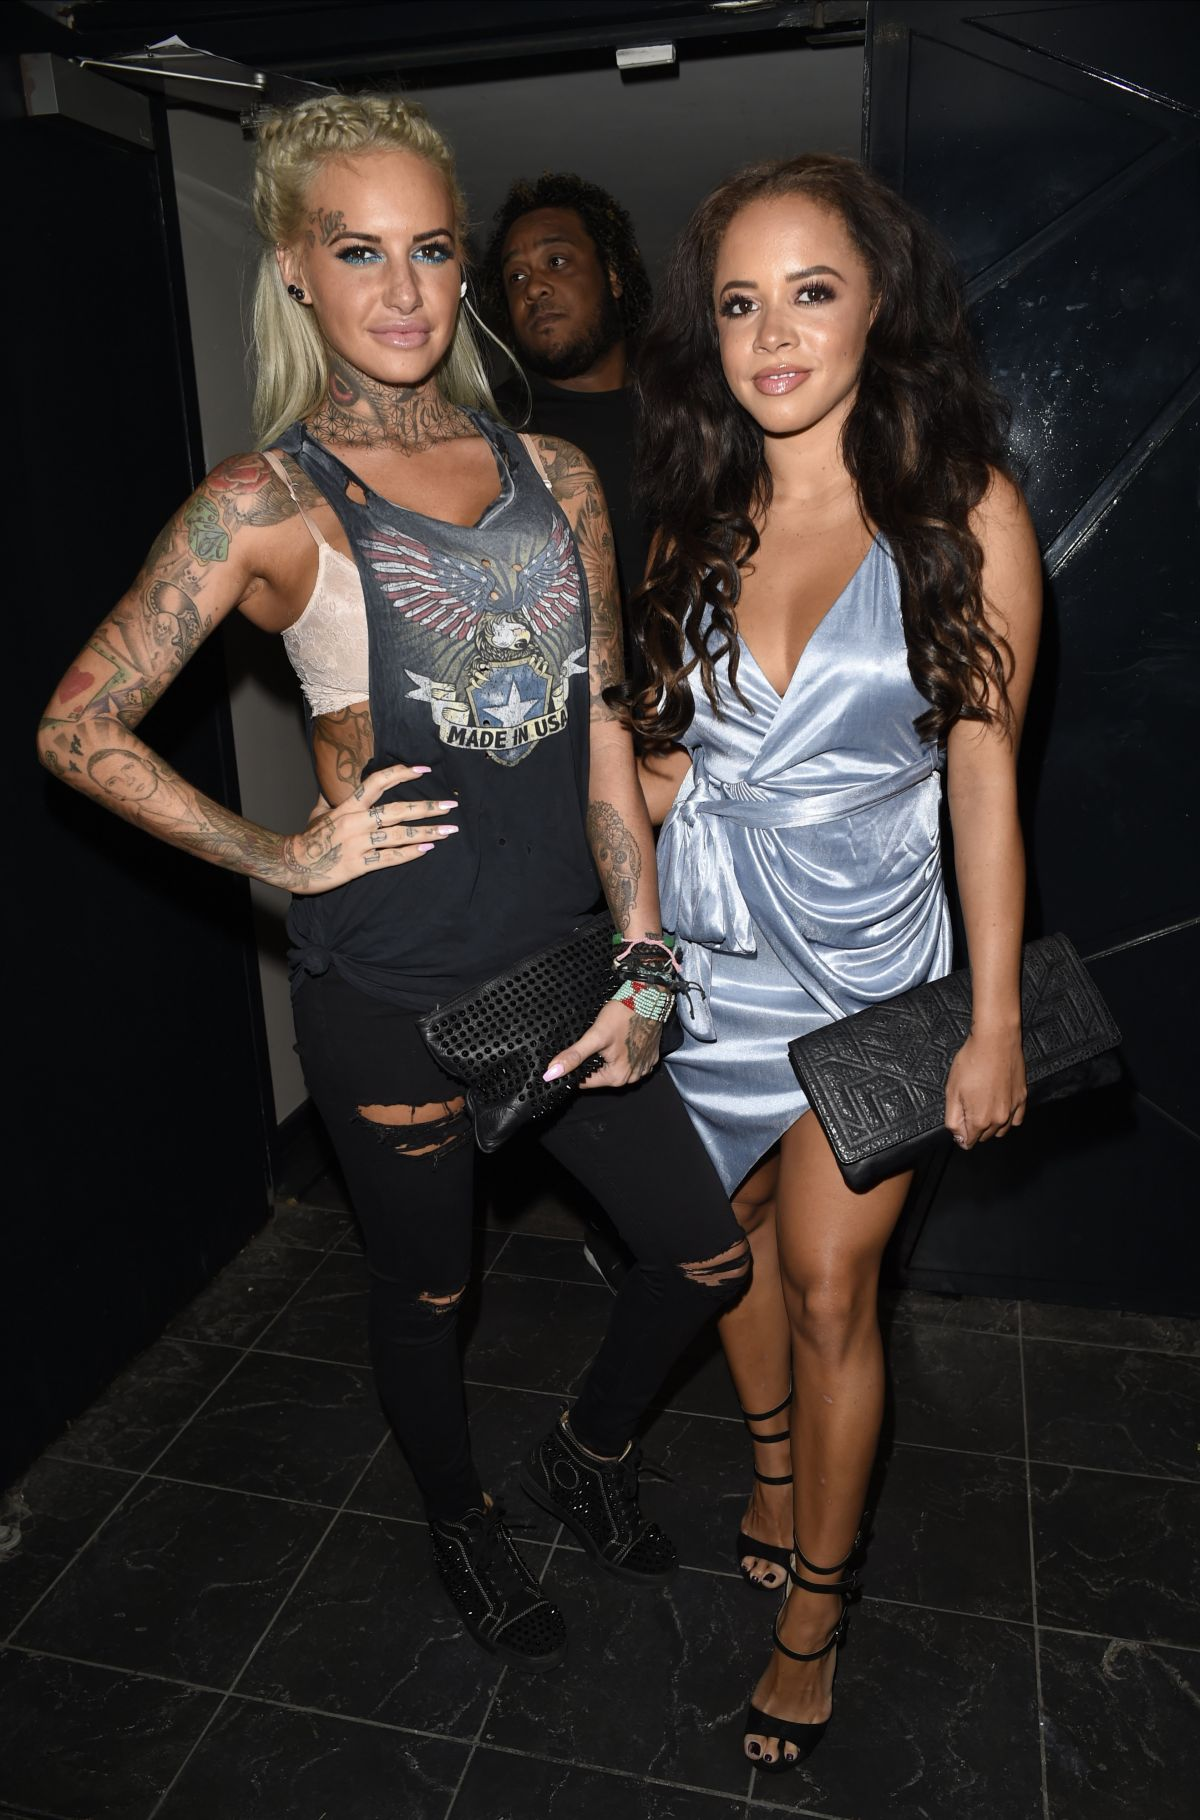 JEMMA LUCY and OLIVIA WALSH at Club LIV in Manchester 05/12/2016